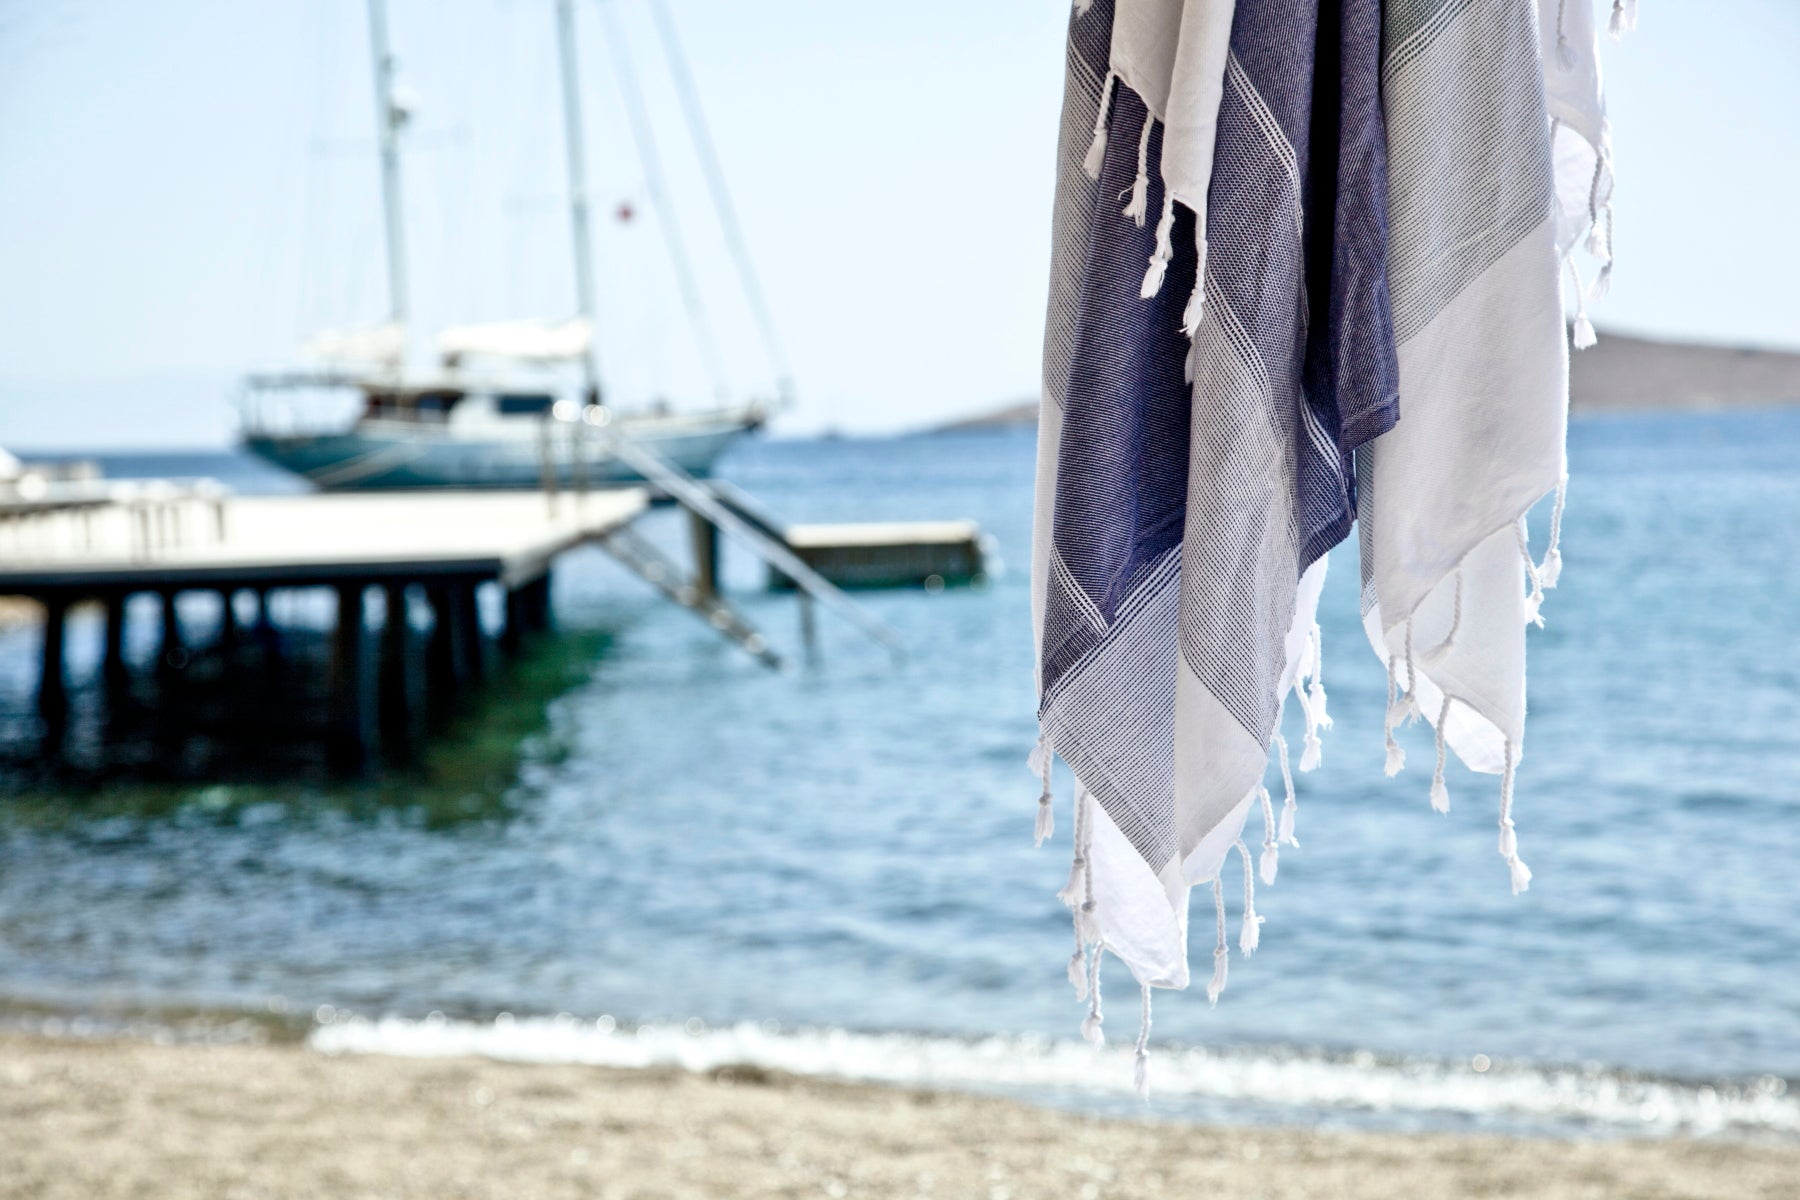 Towel; Towels; Beach Towel; Beach Towels; Hammam; Hammams; Hammamas; Peshtemal; Pestemal; Fouta; Futah; Sarong; Turkey; Greece; France; Italy; Spain; Summer; Holiday; Hotel; Apartment; Villa; Yacht; Yachting; Sun; Travel; Travelers; Travel Essential; Travel Light; Travelling; Hot; Sea; Sand; Sailing; Surfing; Nautical; Festival; Camping; Backpacking; Sunbed; UK; England; Devon; Cornwall; Dorset; Lifestyle; Cotton; Pool; Homestyle